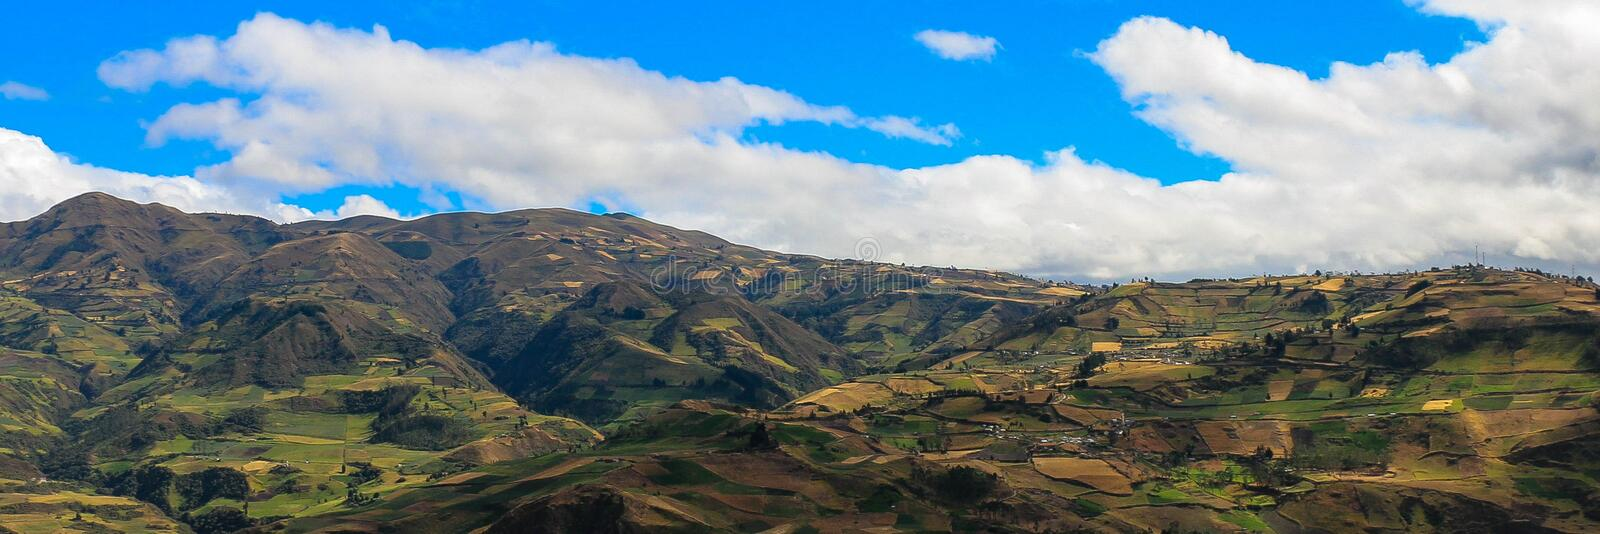 Fields of Ecuador royalty free stock photos